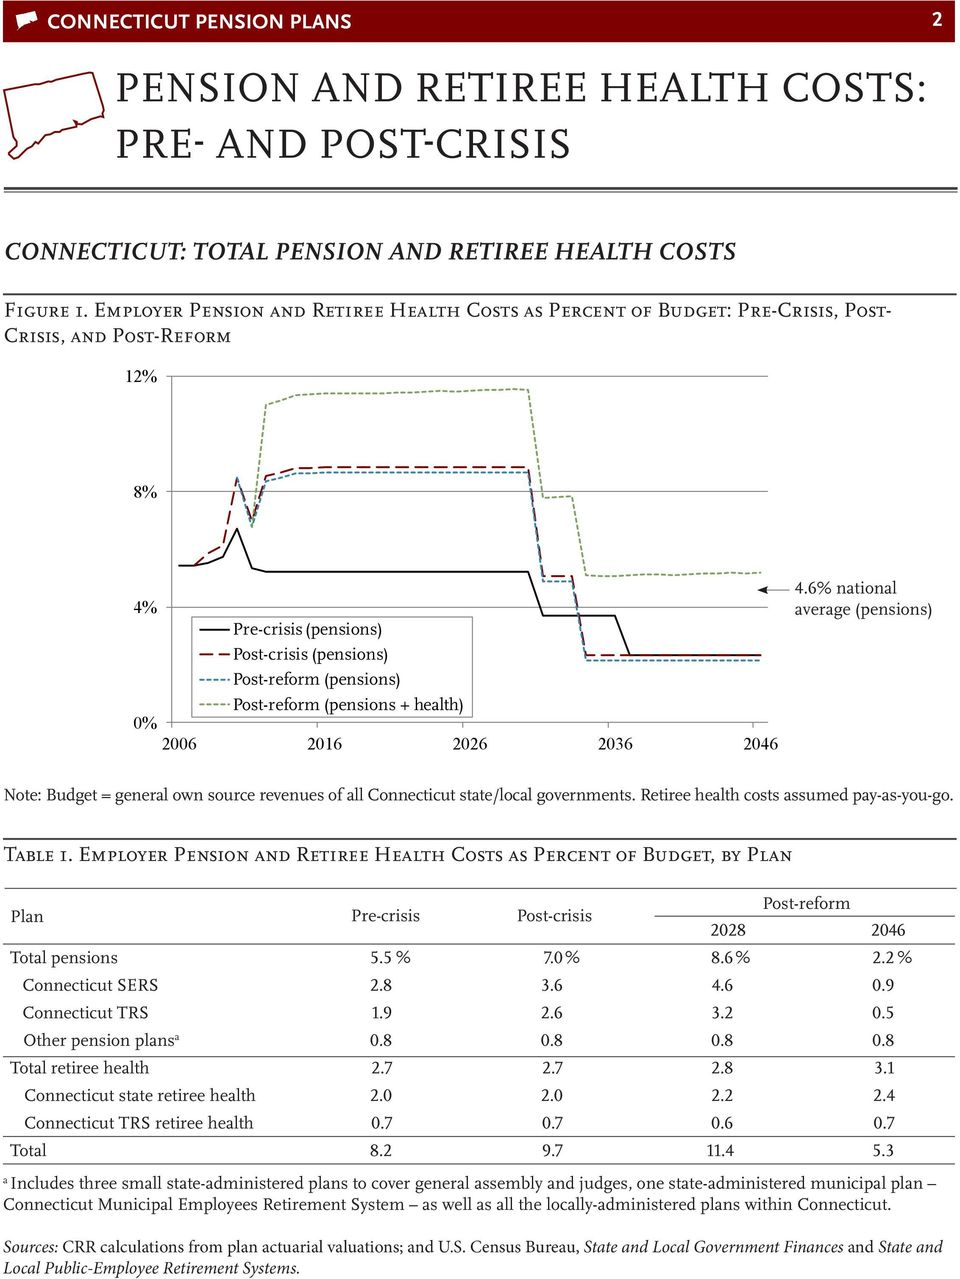 2016 2026 2036 2046 4.6% national average (pensions) Note: Budget = general own source revenues of all Connecticut state/local governments. Retiree health costs assumed pay-as-you-go. Table 1.